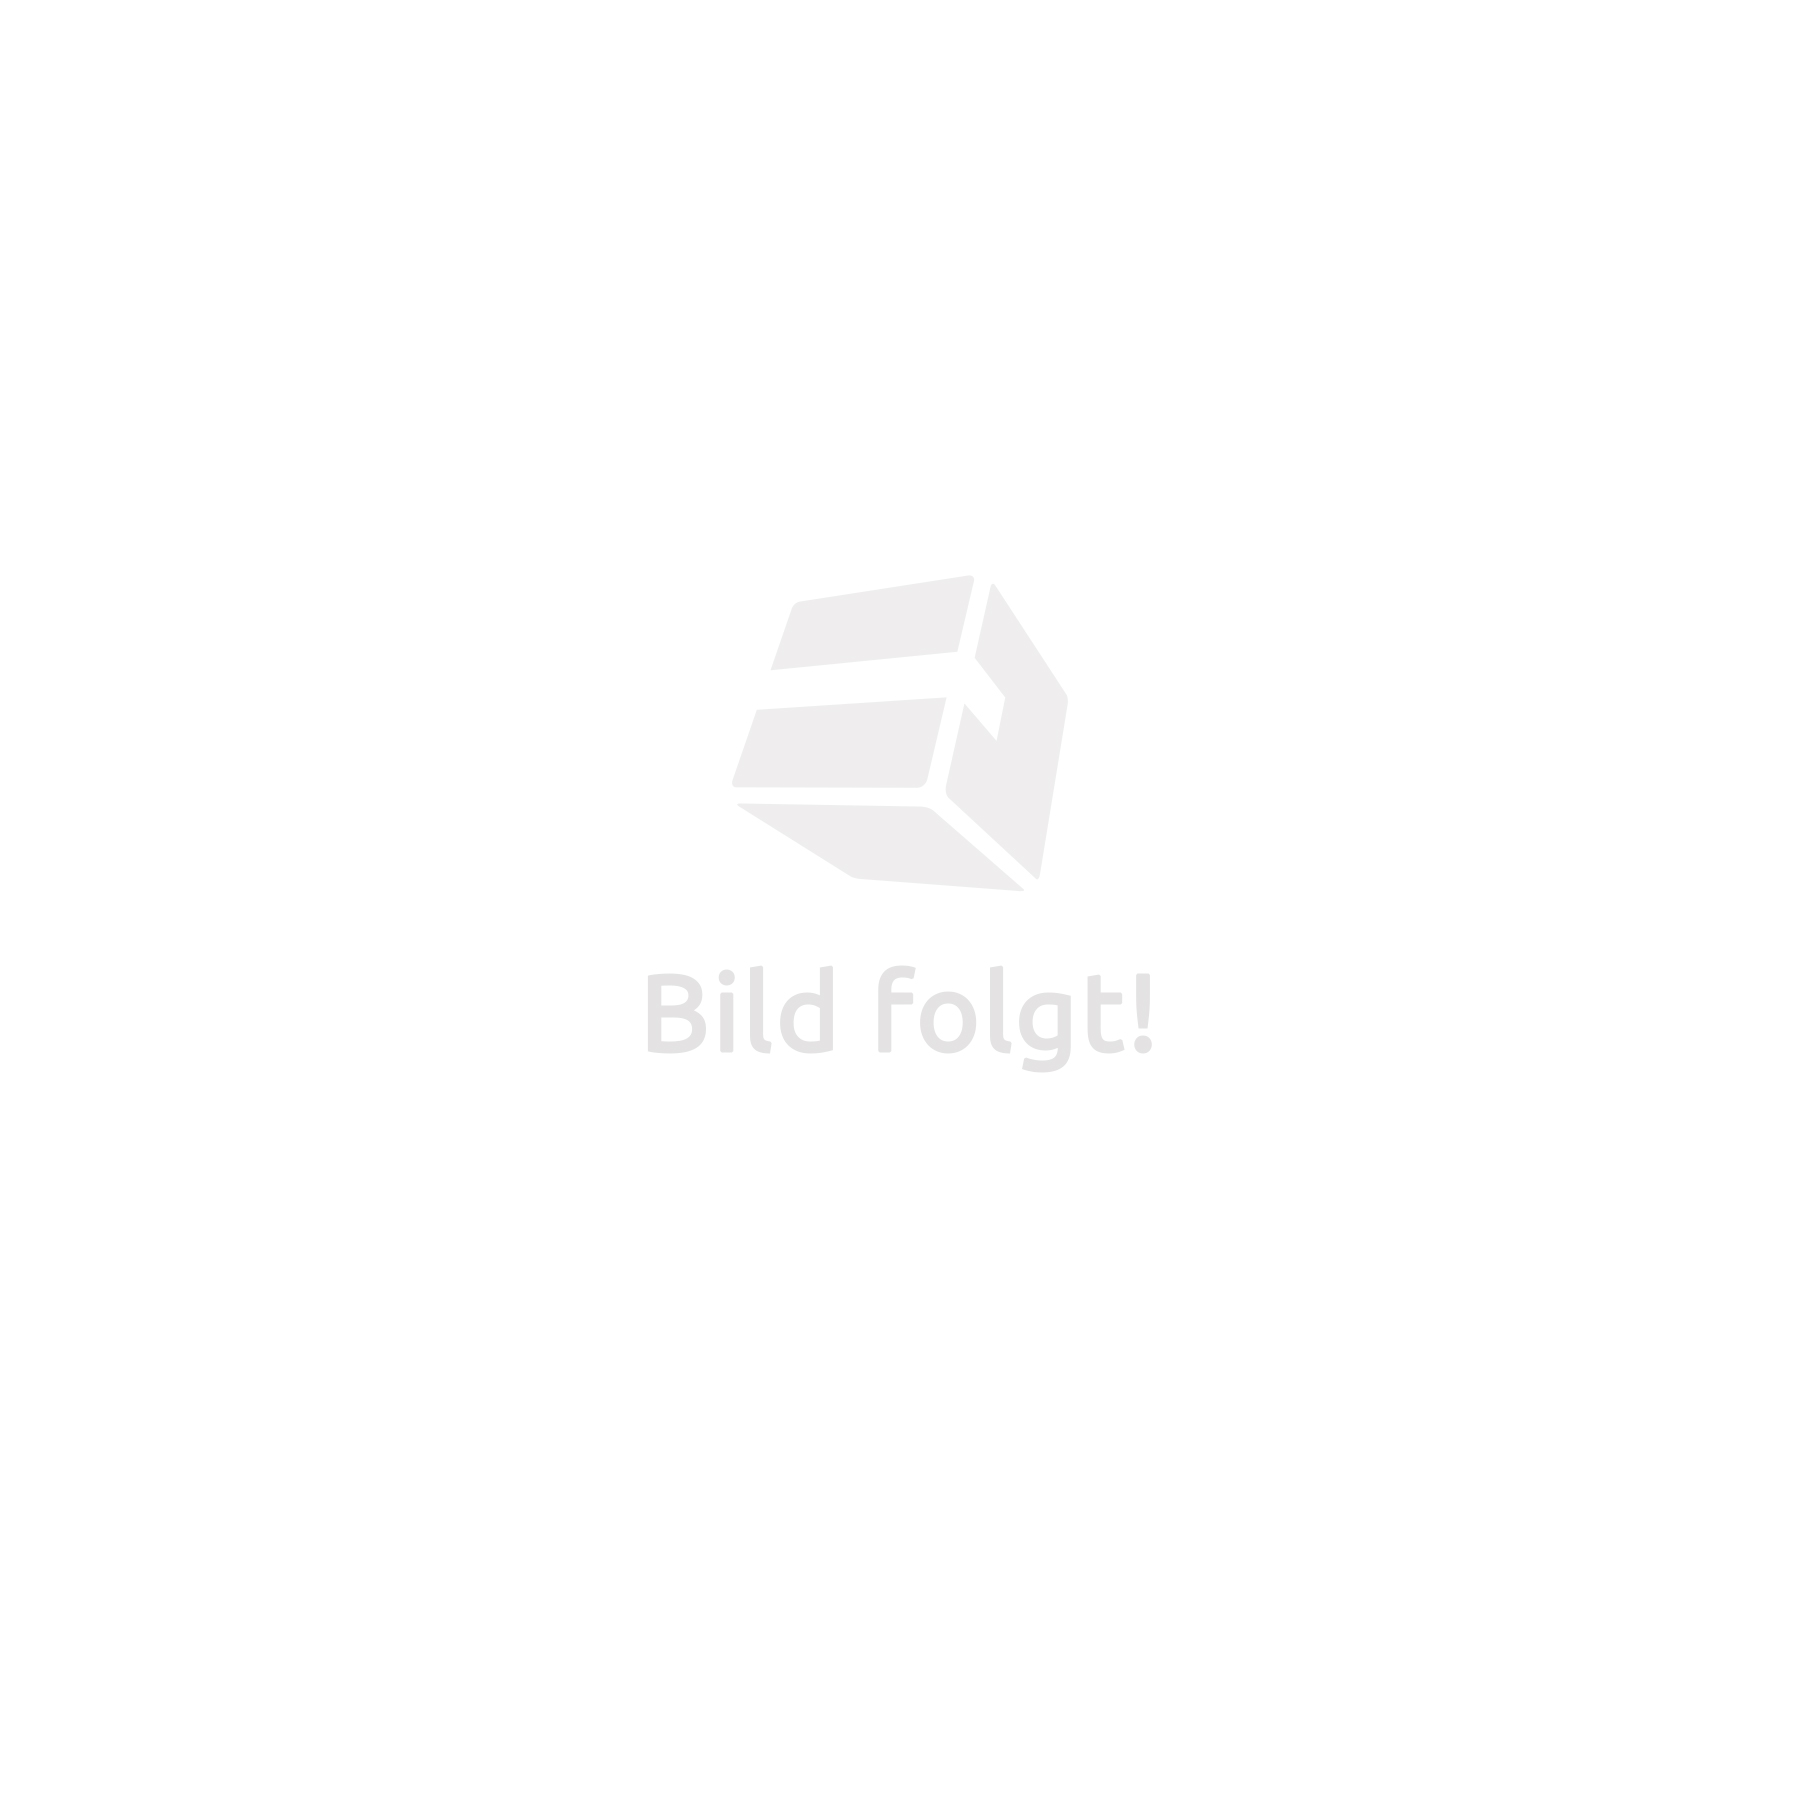 Garden trolley tiltable with plastic tray max. 300 kg